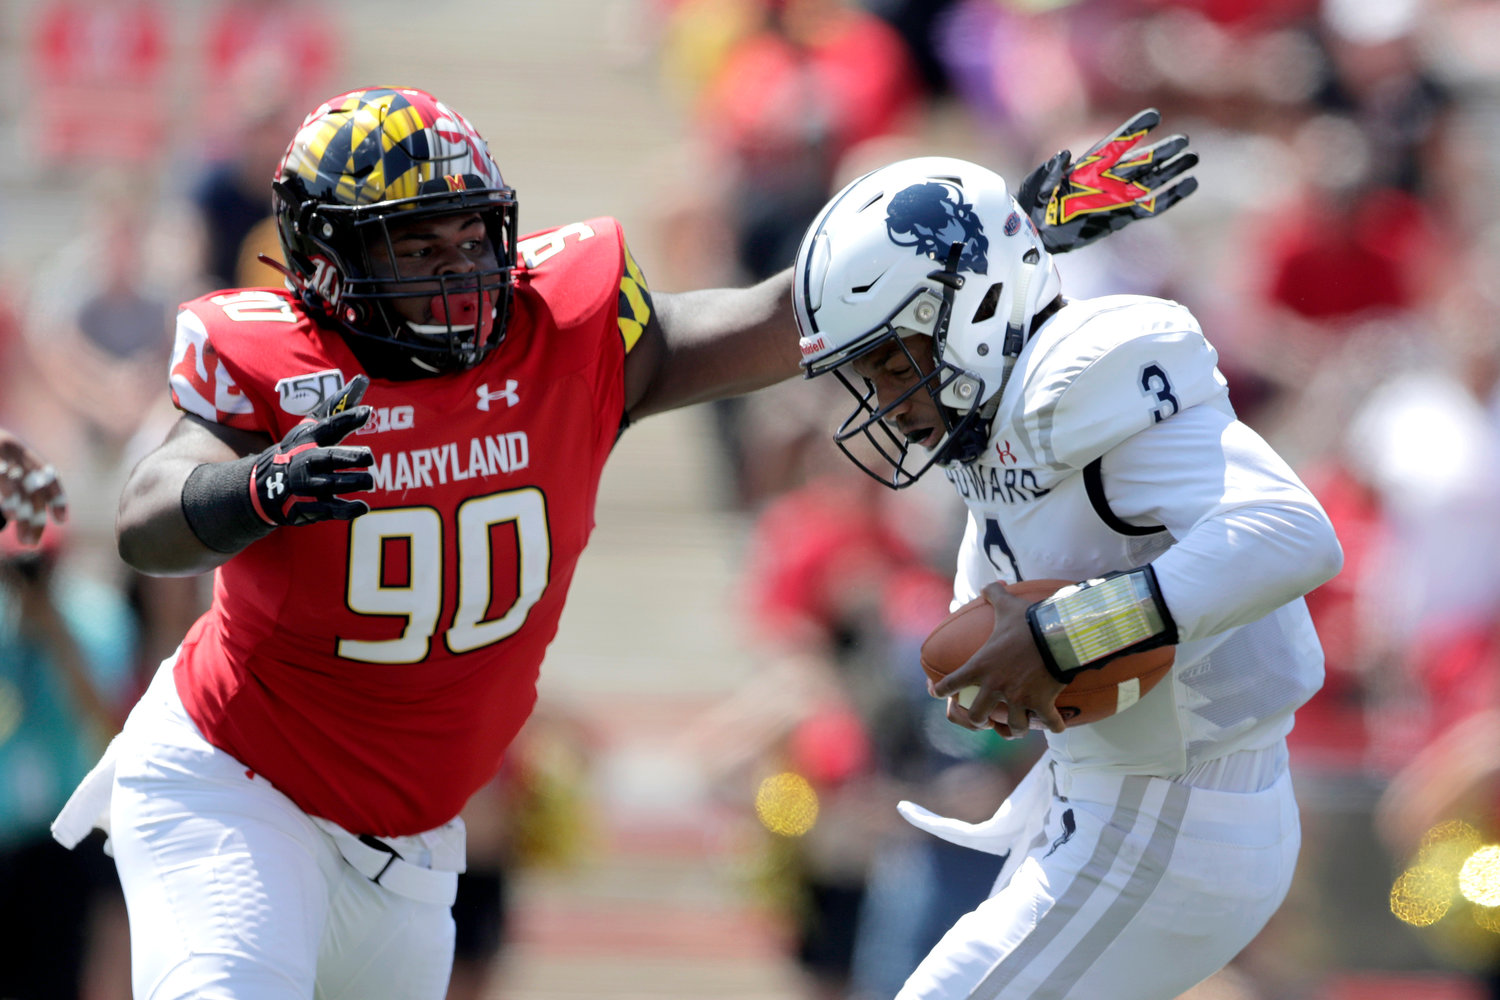 SACK ATTACK — Maryland defensive lineman B'Ahmad Miller, left, moves in to sack Howard quarterback Caylin Newton during the first half of a game on Saturday in College Park, Md. The Terrapins won, 79-0.